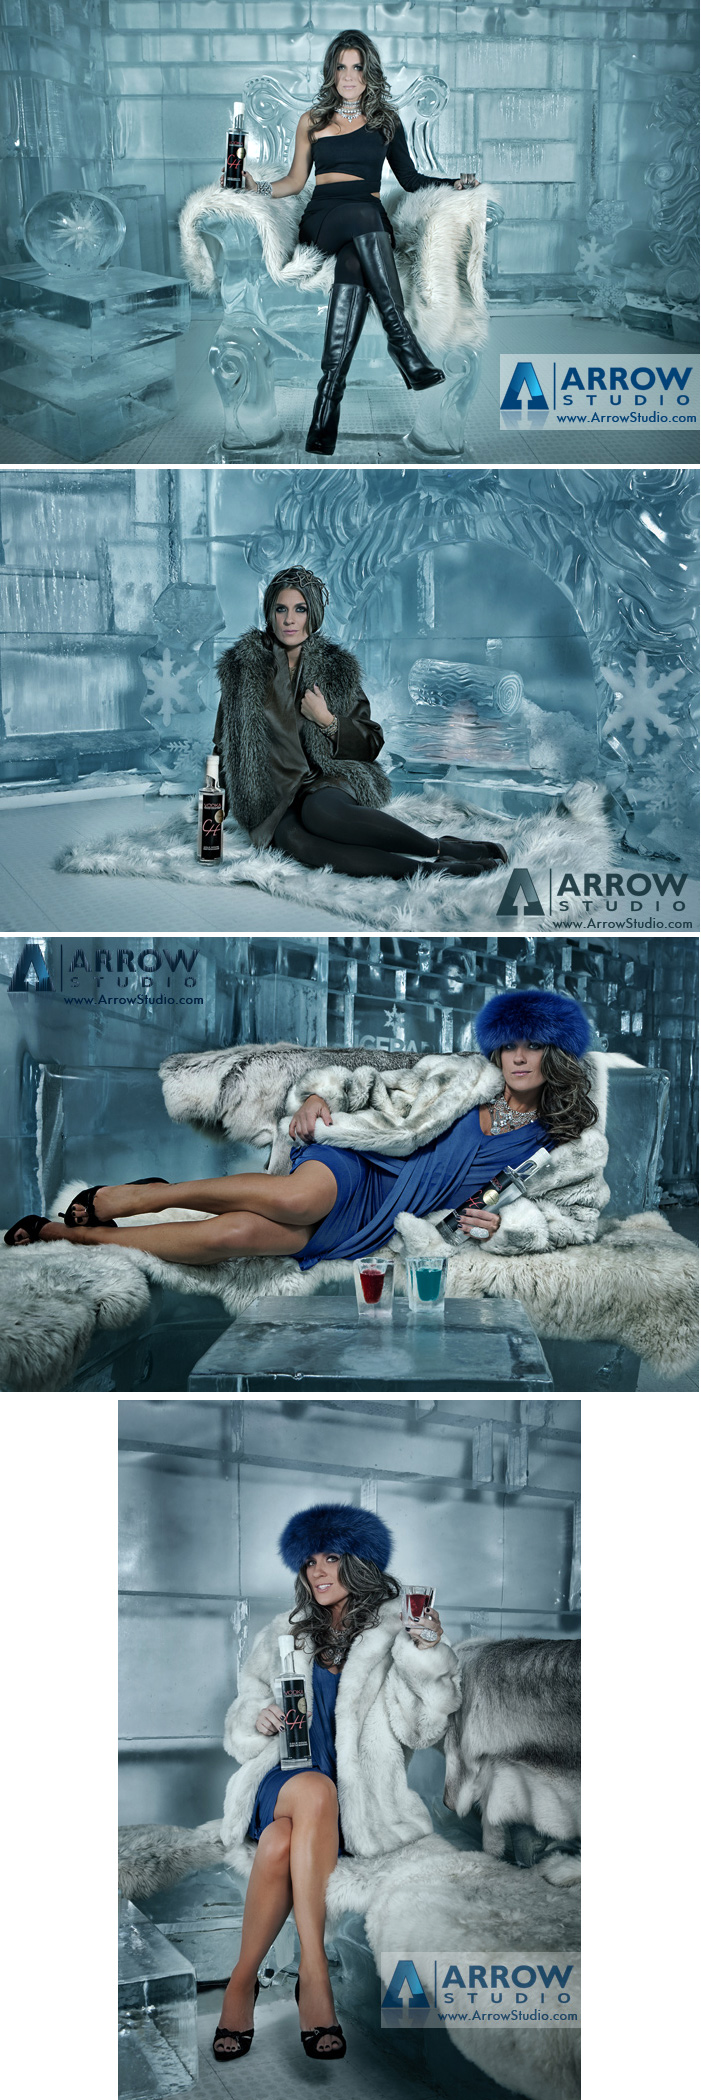 Orlando, FL; Icebar Orlando Aug 25, 2010 Arrow Studio LLC Brandi in a shoot for Cold House Vodka in Icebar Orlando. Wardrobe Tammara Kohler, hair Nicole Beth Miller, MUA Sunha Julie Fajardo